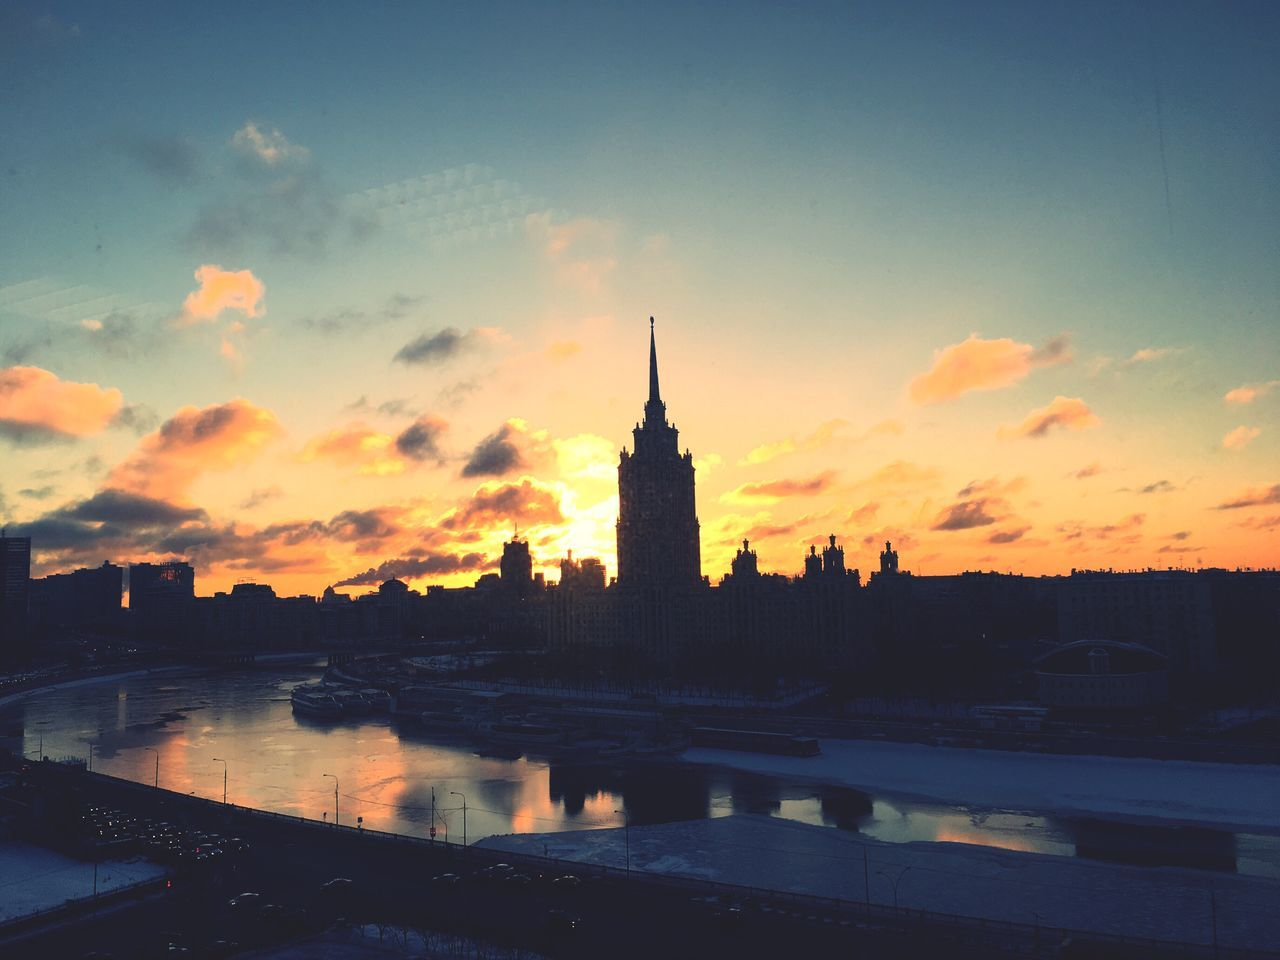 """Sunrise at Hotel """"Ukraine"""", Moscow, Russia Architecture Sky Built Structure Sunset City Morning Sky Sunrise_sunsets_aroundworld Building Exterior No People Cloud - Sky Silhouette Travel Destinations Outdoors Nature Water Beauty In Nature Cityscape Day"""